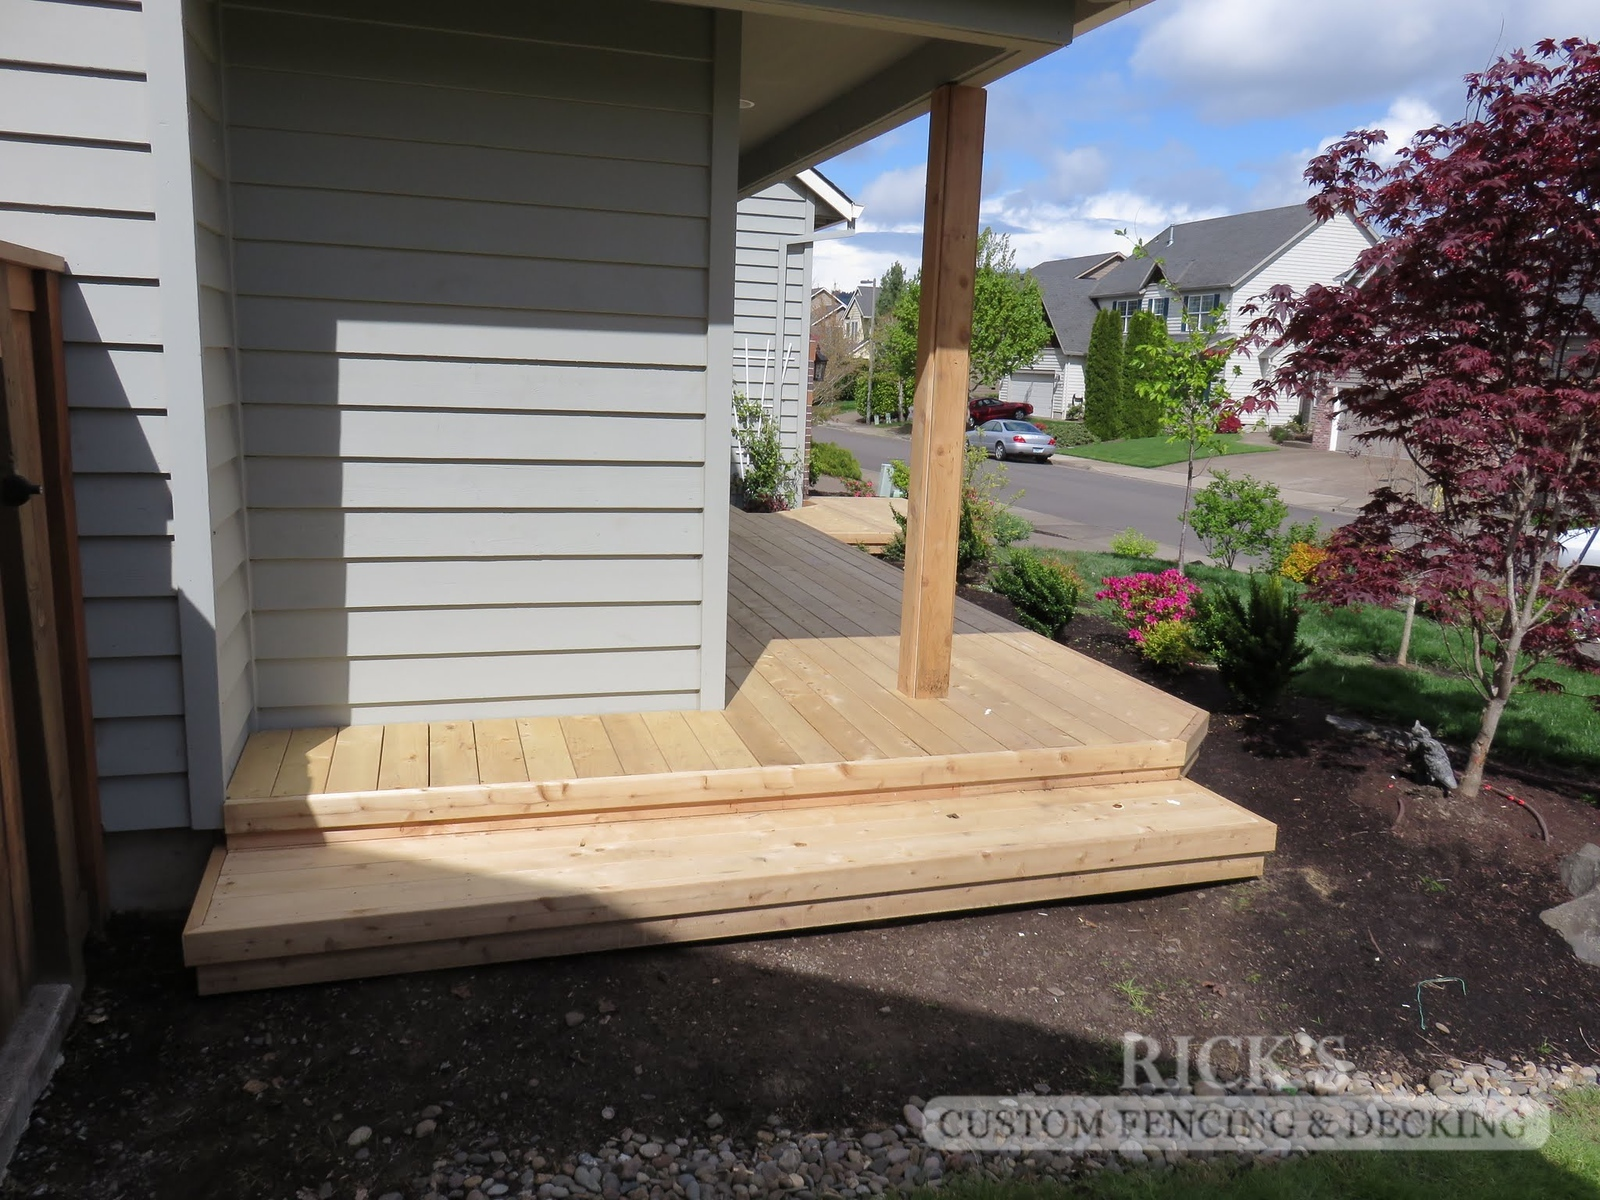 1019 - Port Orford Cedar Decking